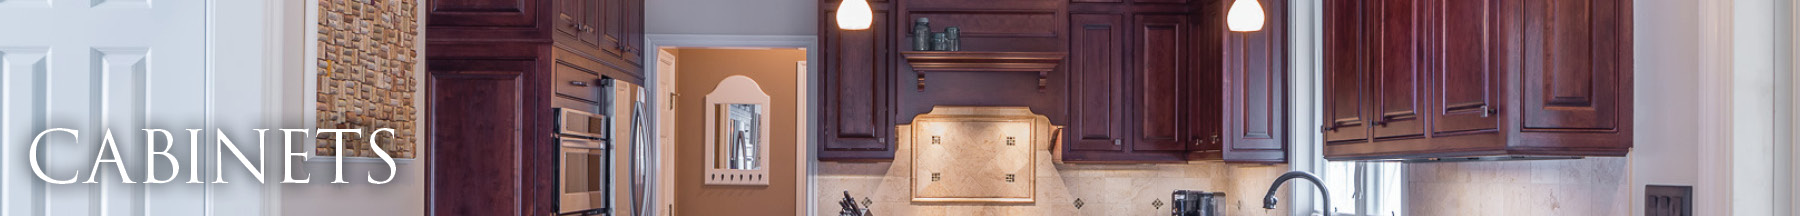 Page Headers-Cabinets